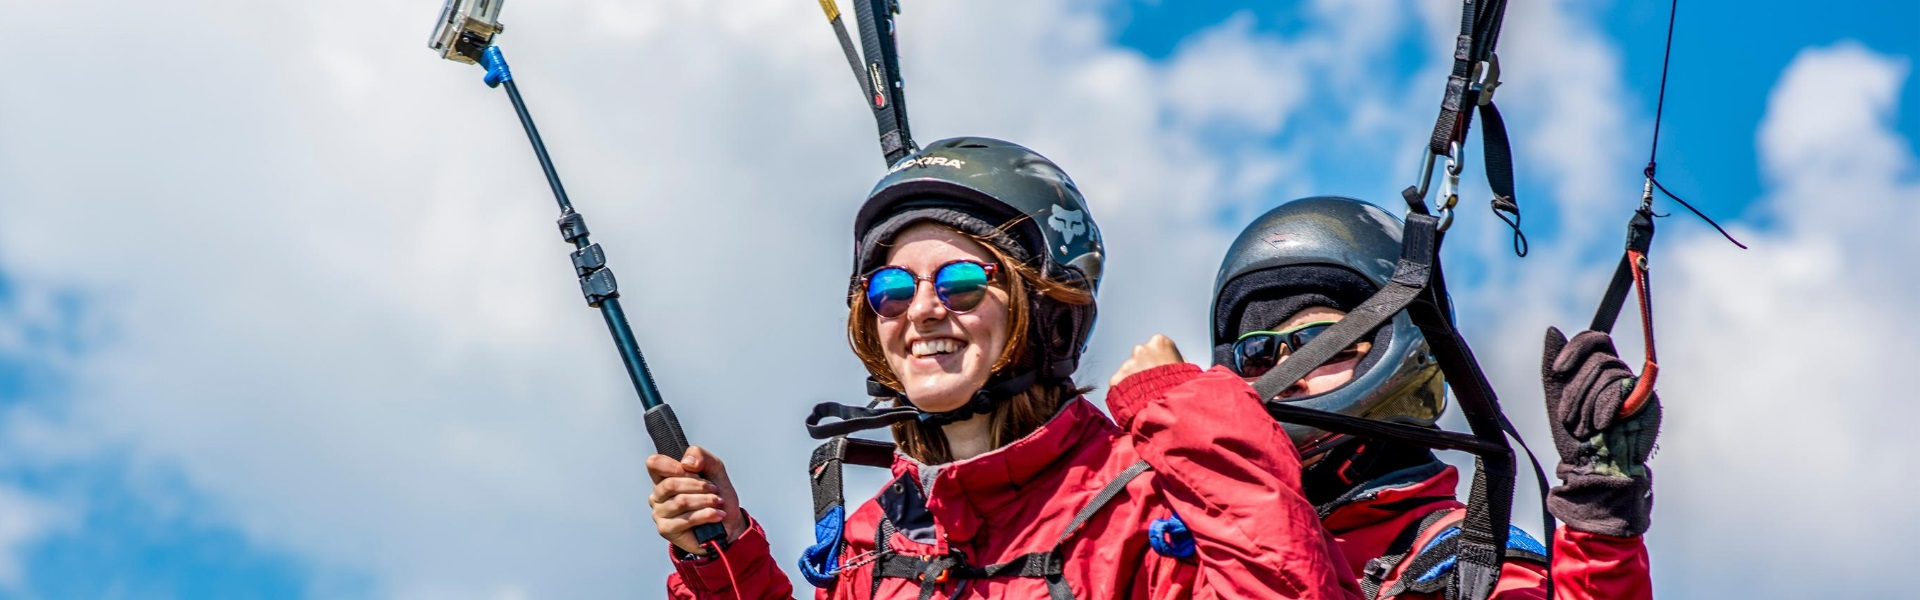 Paragliding in Kherson